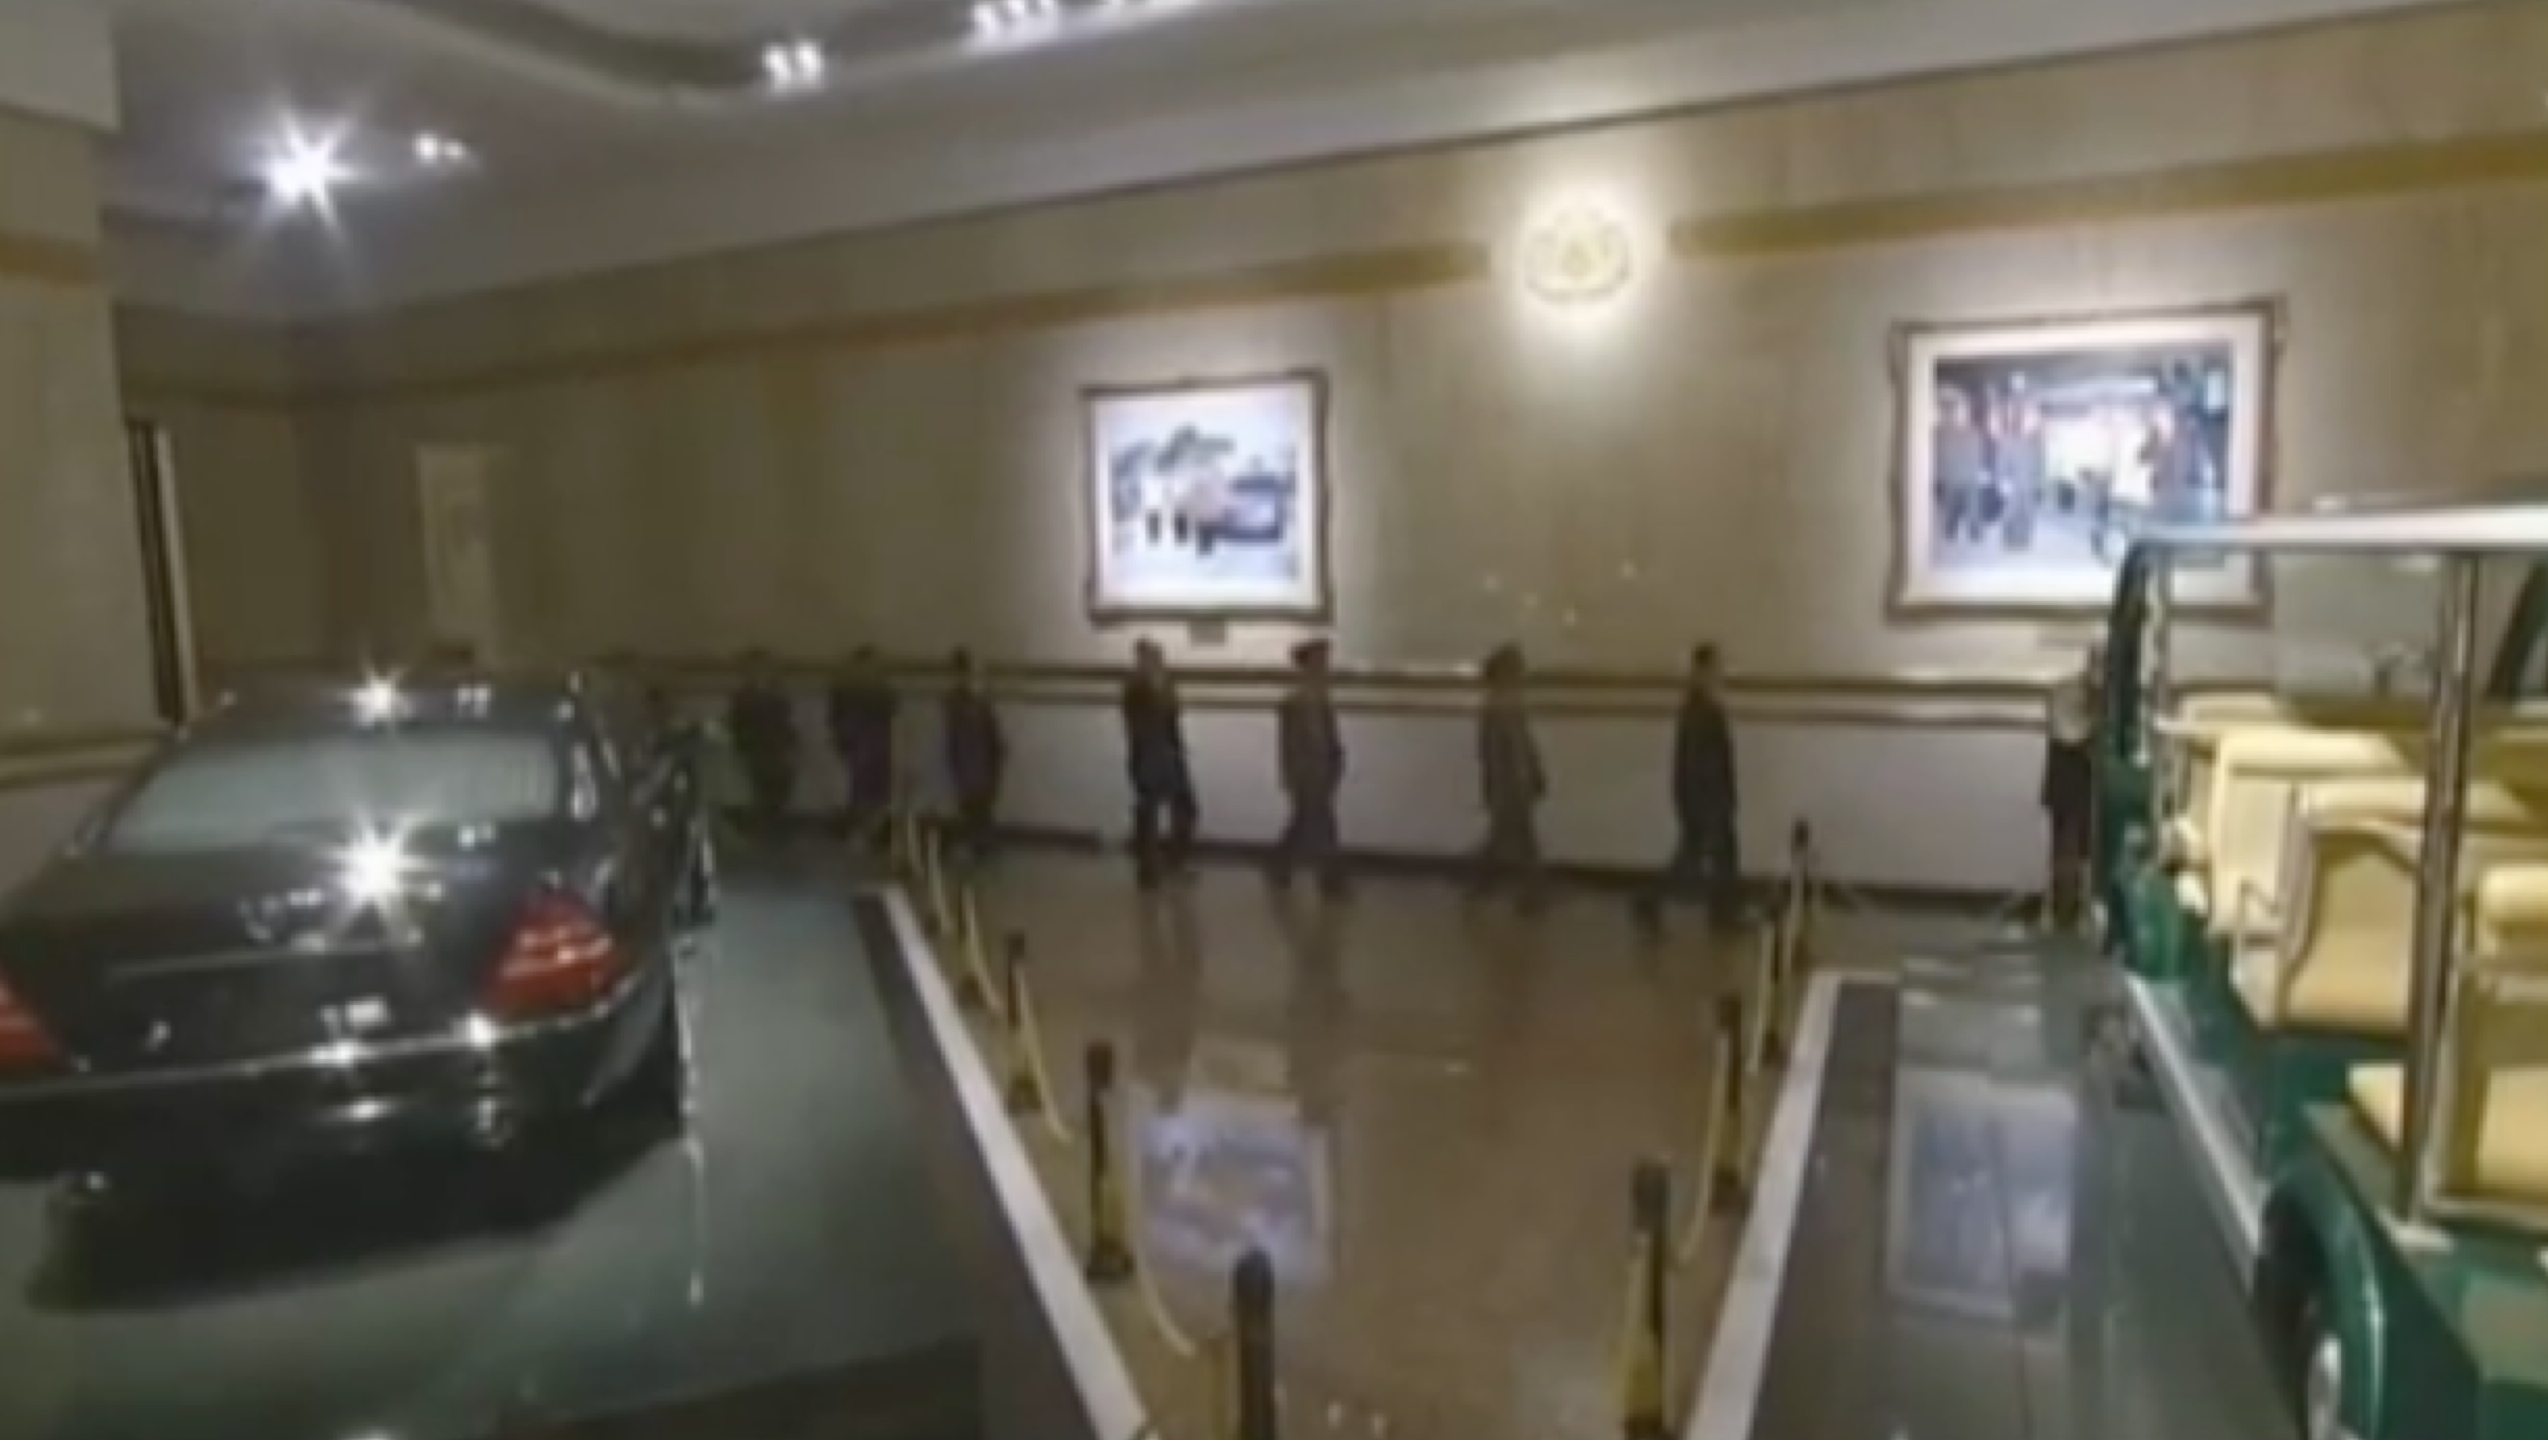 Senior DPRK officials walk past displays of Kim Jong Il's personal car and electric mobility cart on February 16, 2017 at Ku'msusan Palace of the Sun in Pyongyang (Photo: Korean Central Television).